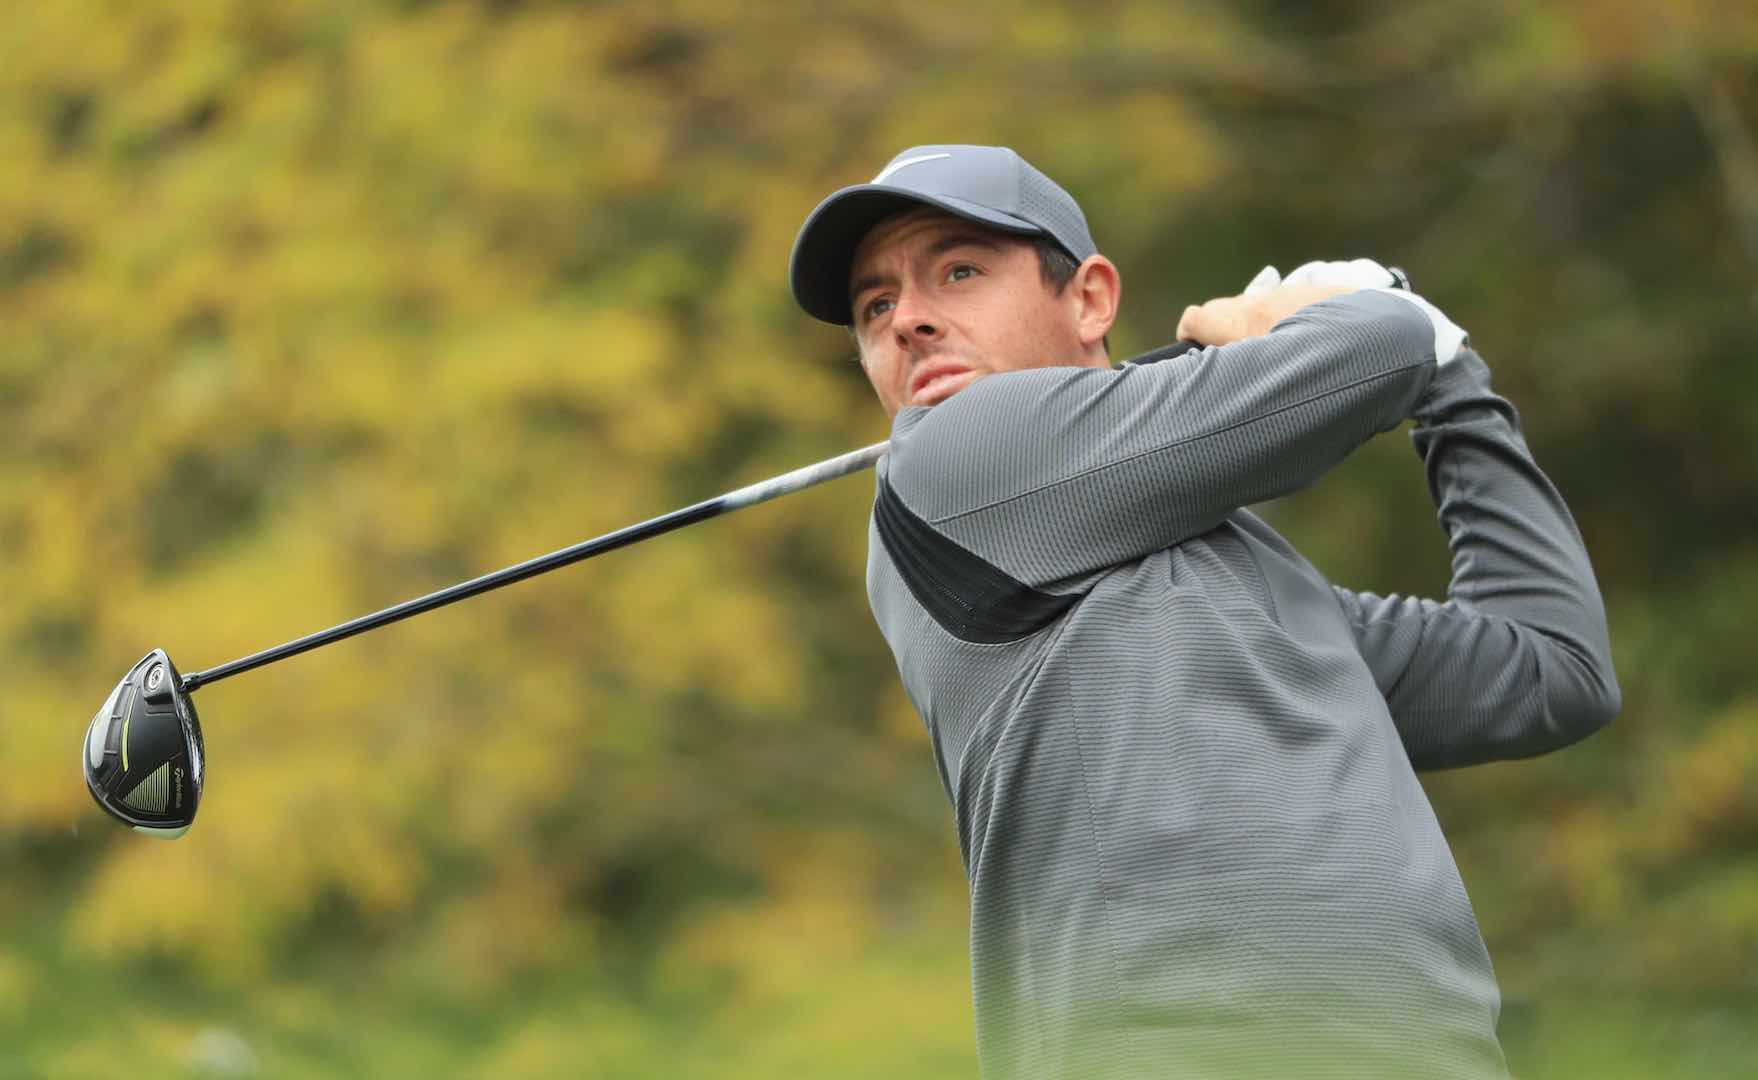 Rory McIlroy shoots 64 on moving day at British Masters